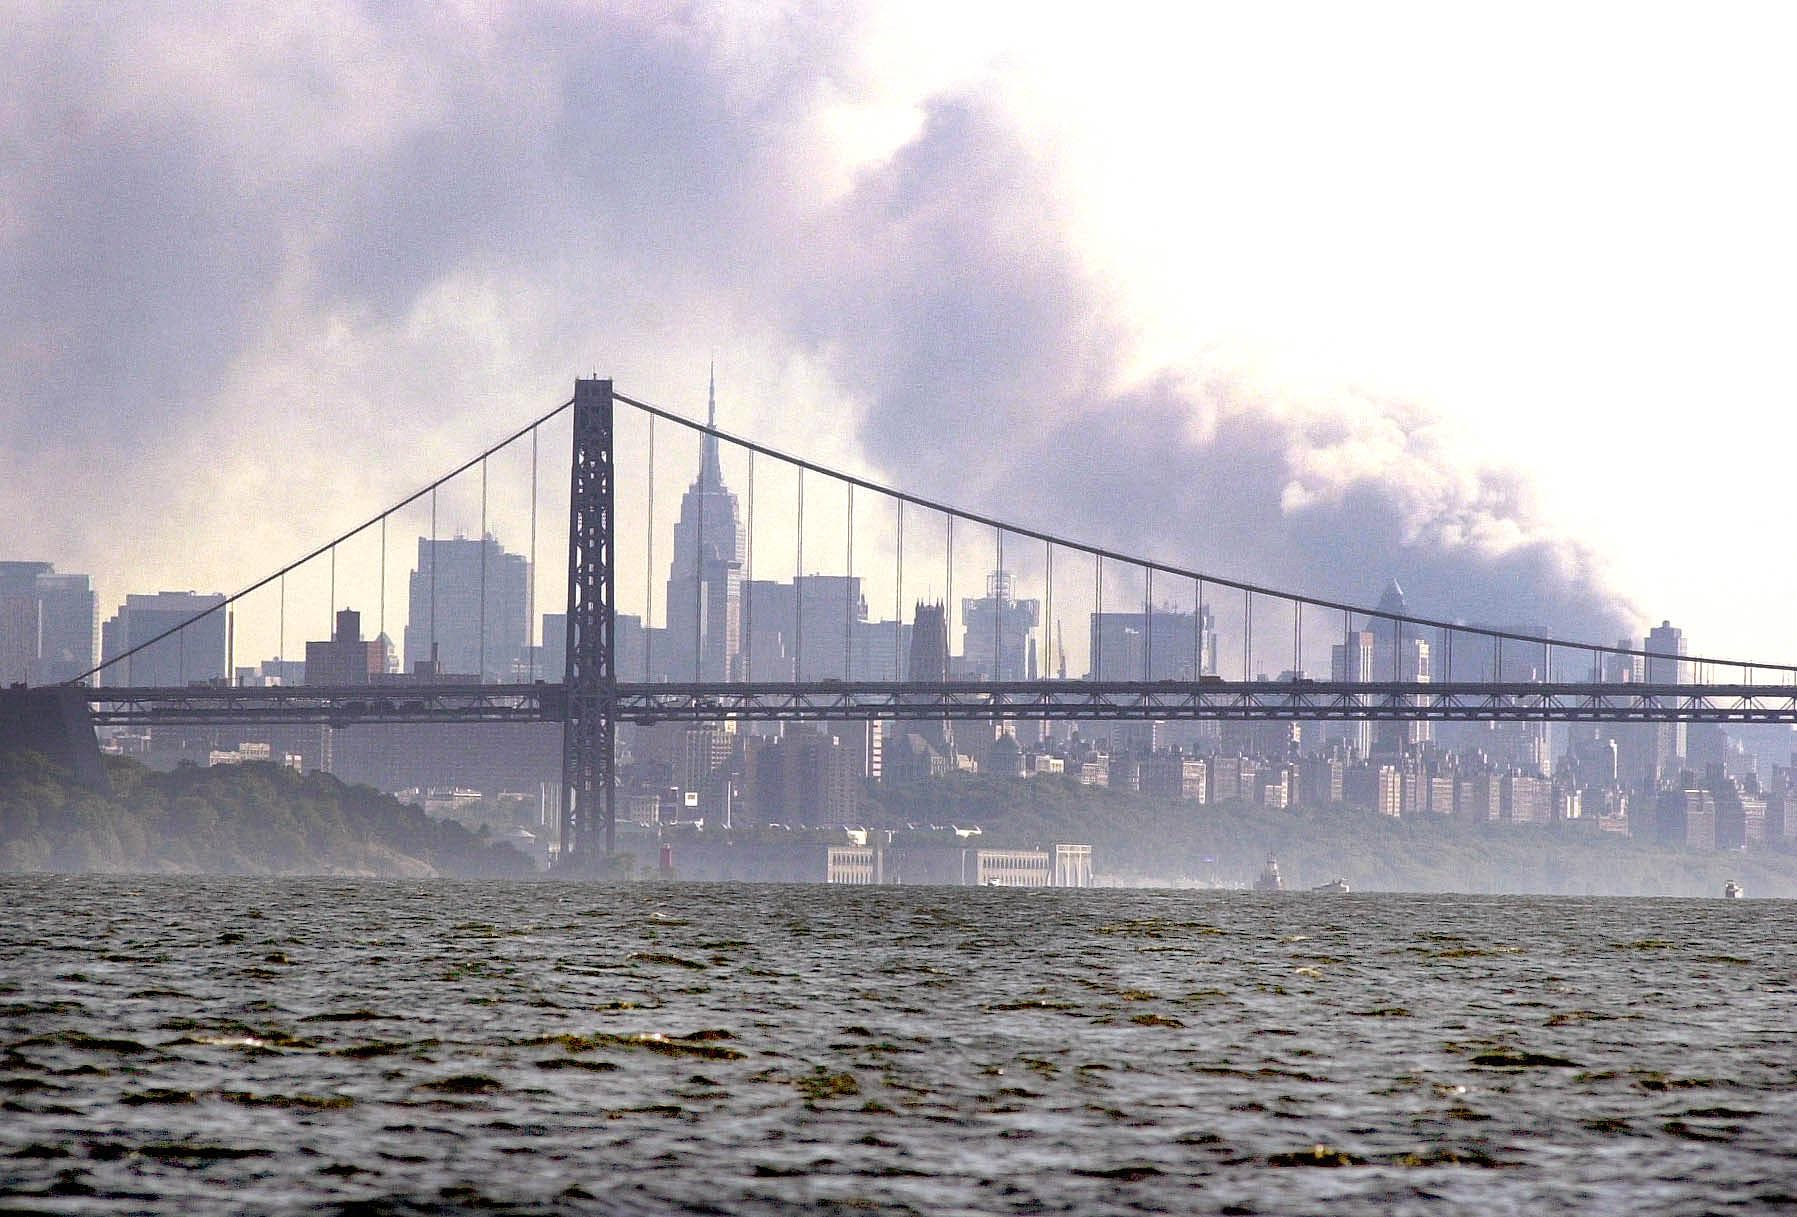 Smoke rises from the New York skyline 11 September 2001 after two hijacked planes crashed into the landmark World Trade Center. (AFP)